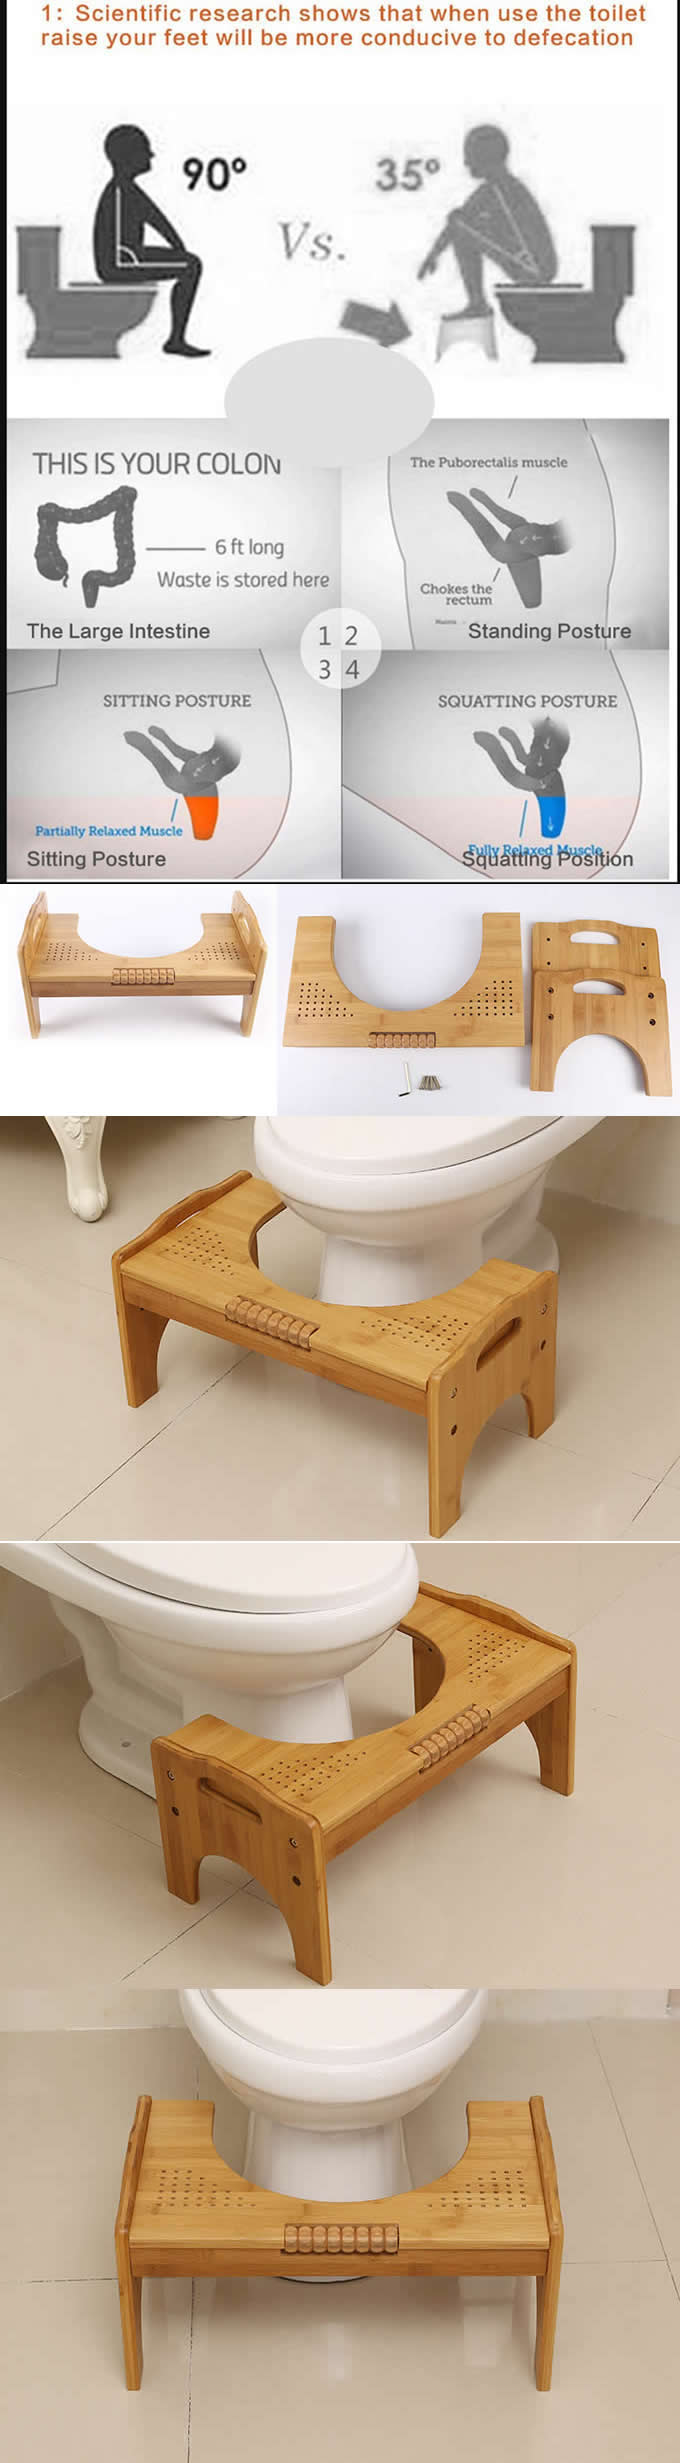 Adjustable Bamboo Toilet Stool Built In Foot Massager Helps You Create A Healthy Toilet Posture And Easier Elimination This Squa Toiletten Inkontinenz Wohnen